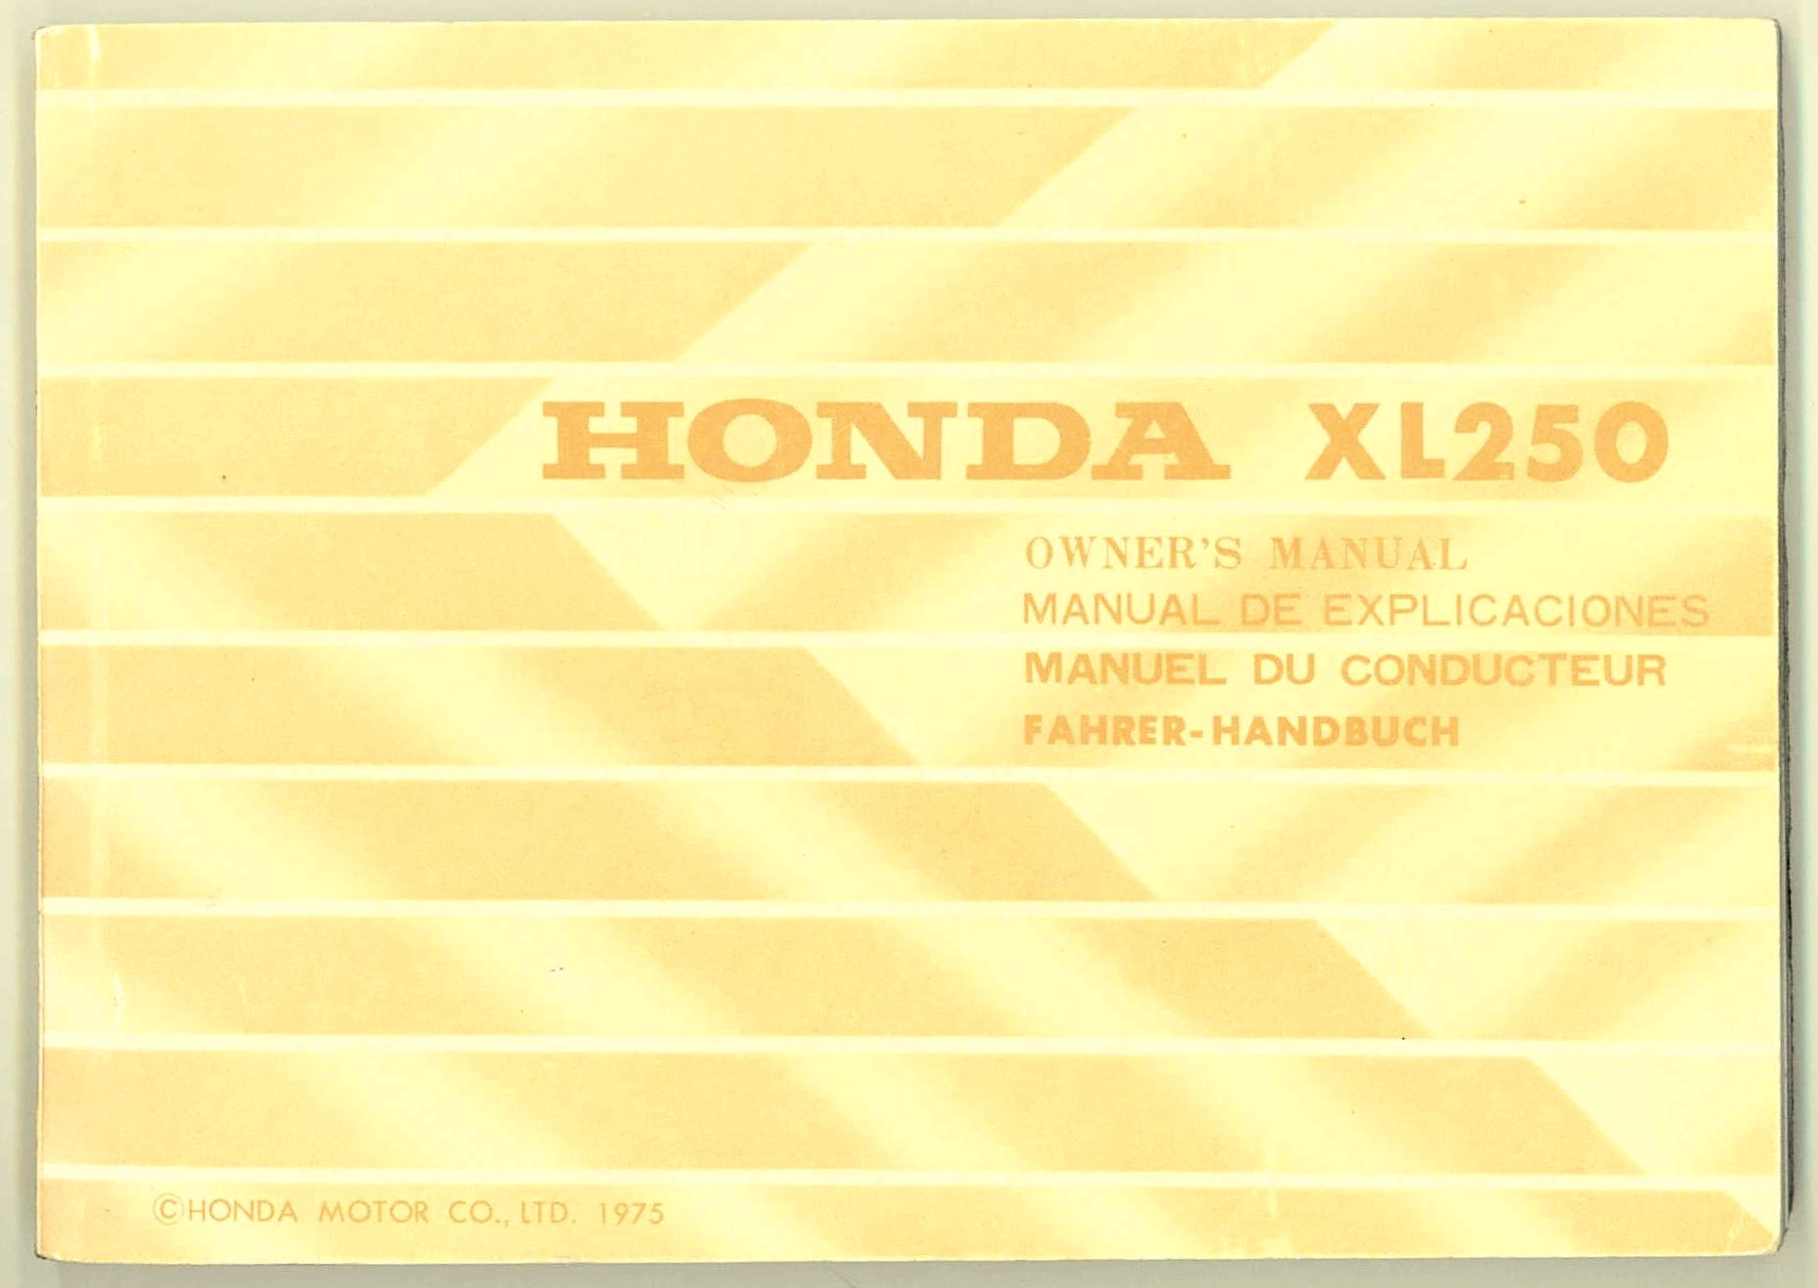 Wiring Diagram Online Honda Xl250 Page 3 And Xl250r 1978 Trusted Diagrams Source Hondaxl250k3 Euro European 1976 K3 Owners Manual